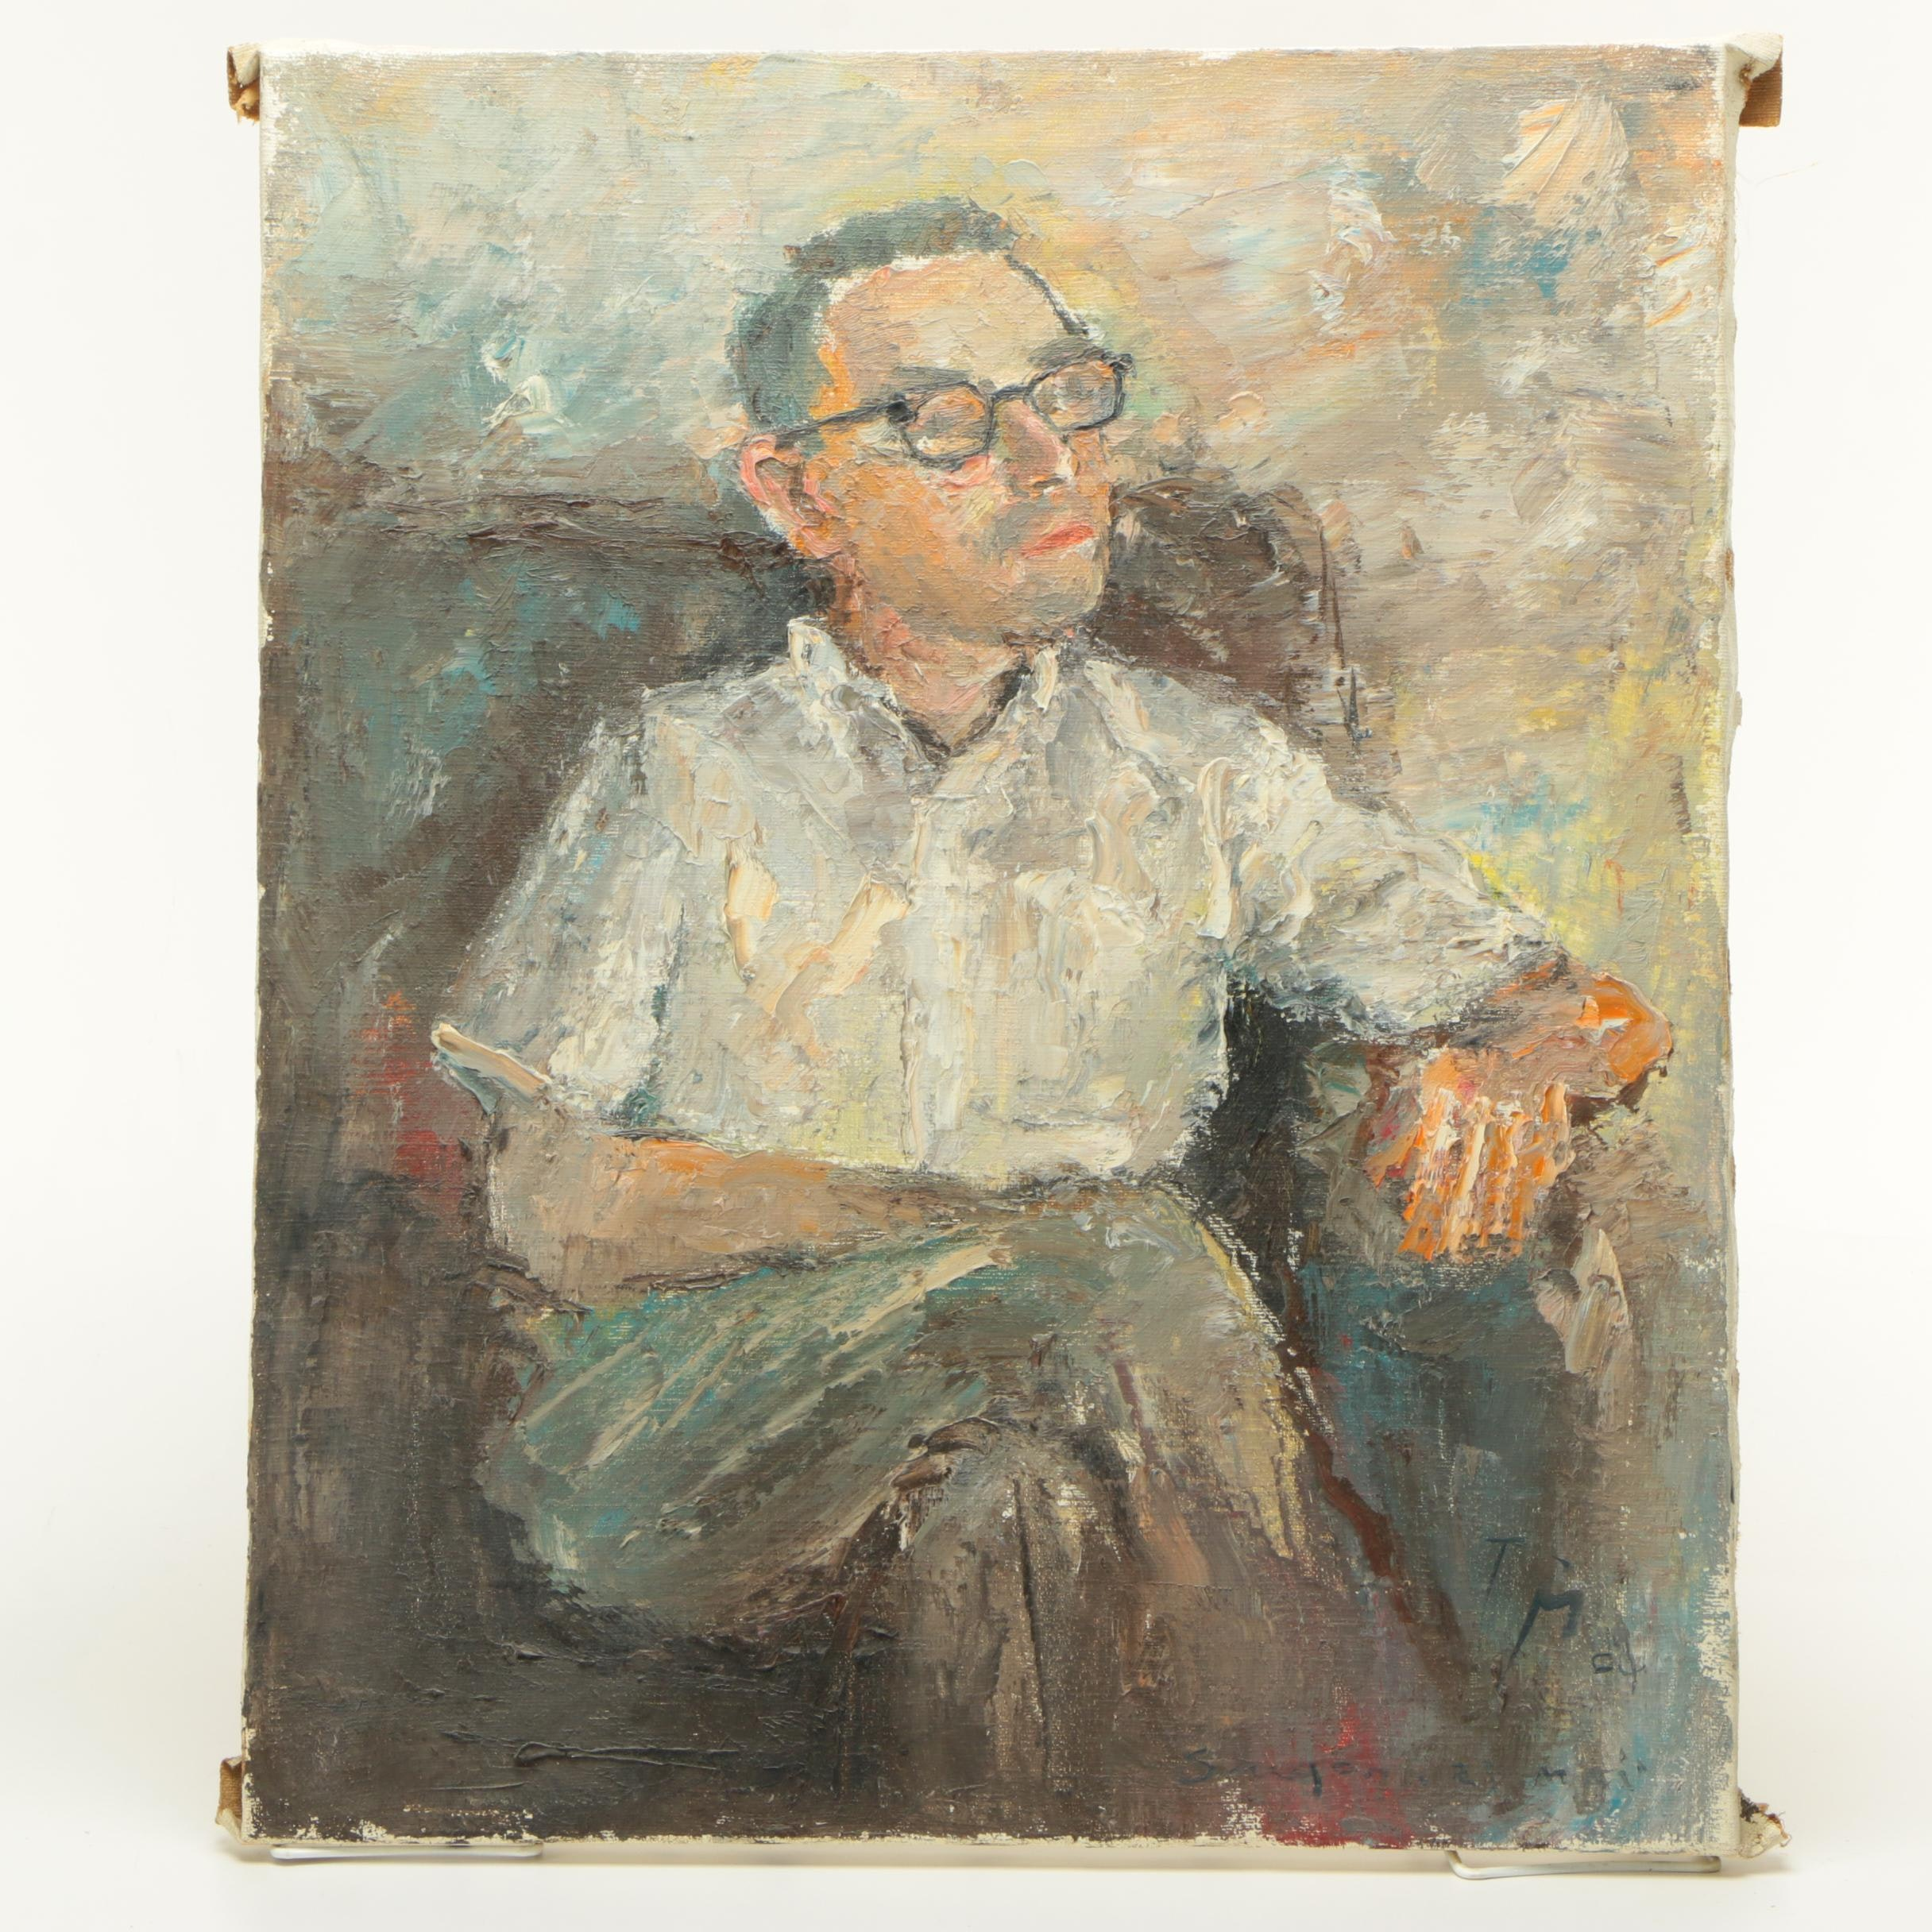 1964 TS Oil Painting of a Man in Glasses